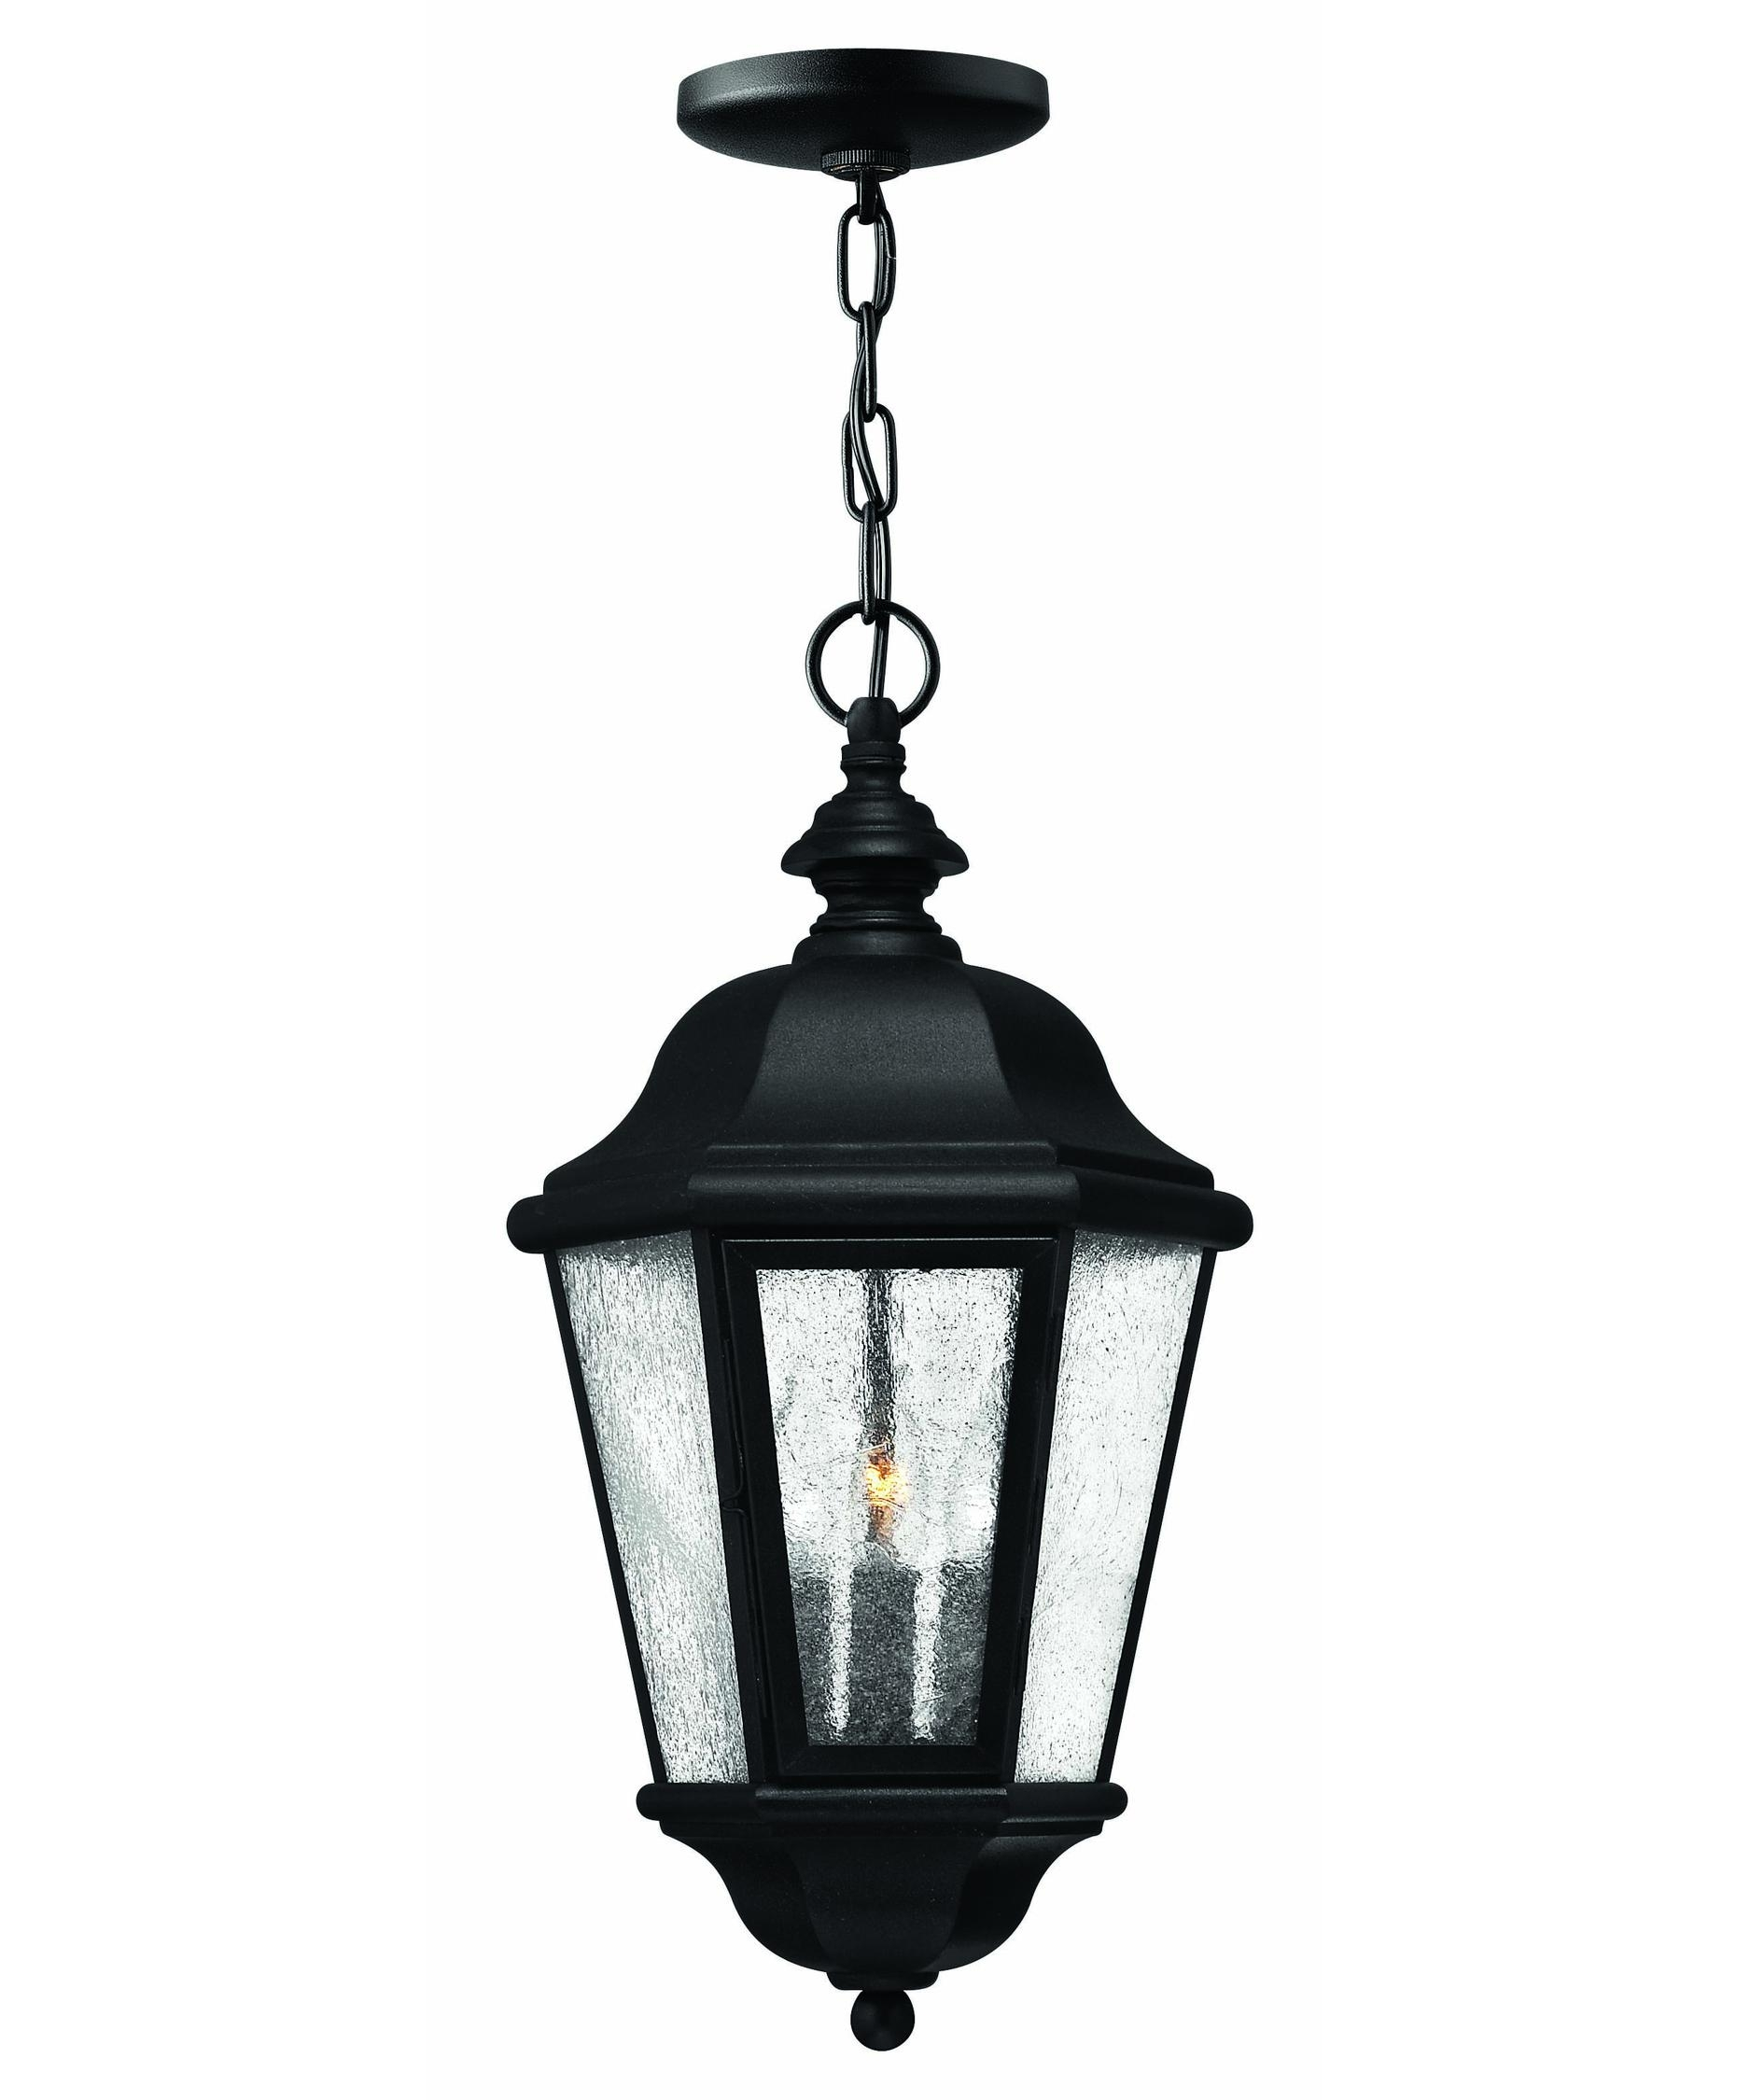 Hinkley Lighting 1672 Edgewater 10 Inch Wide 3 Light Outdoor Hanging Pertaining To Outdoor Hanging Lanterns At Amazon (View 7 of 15)